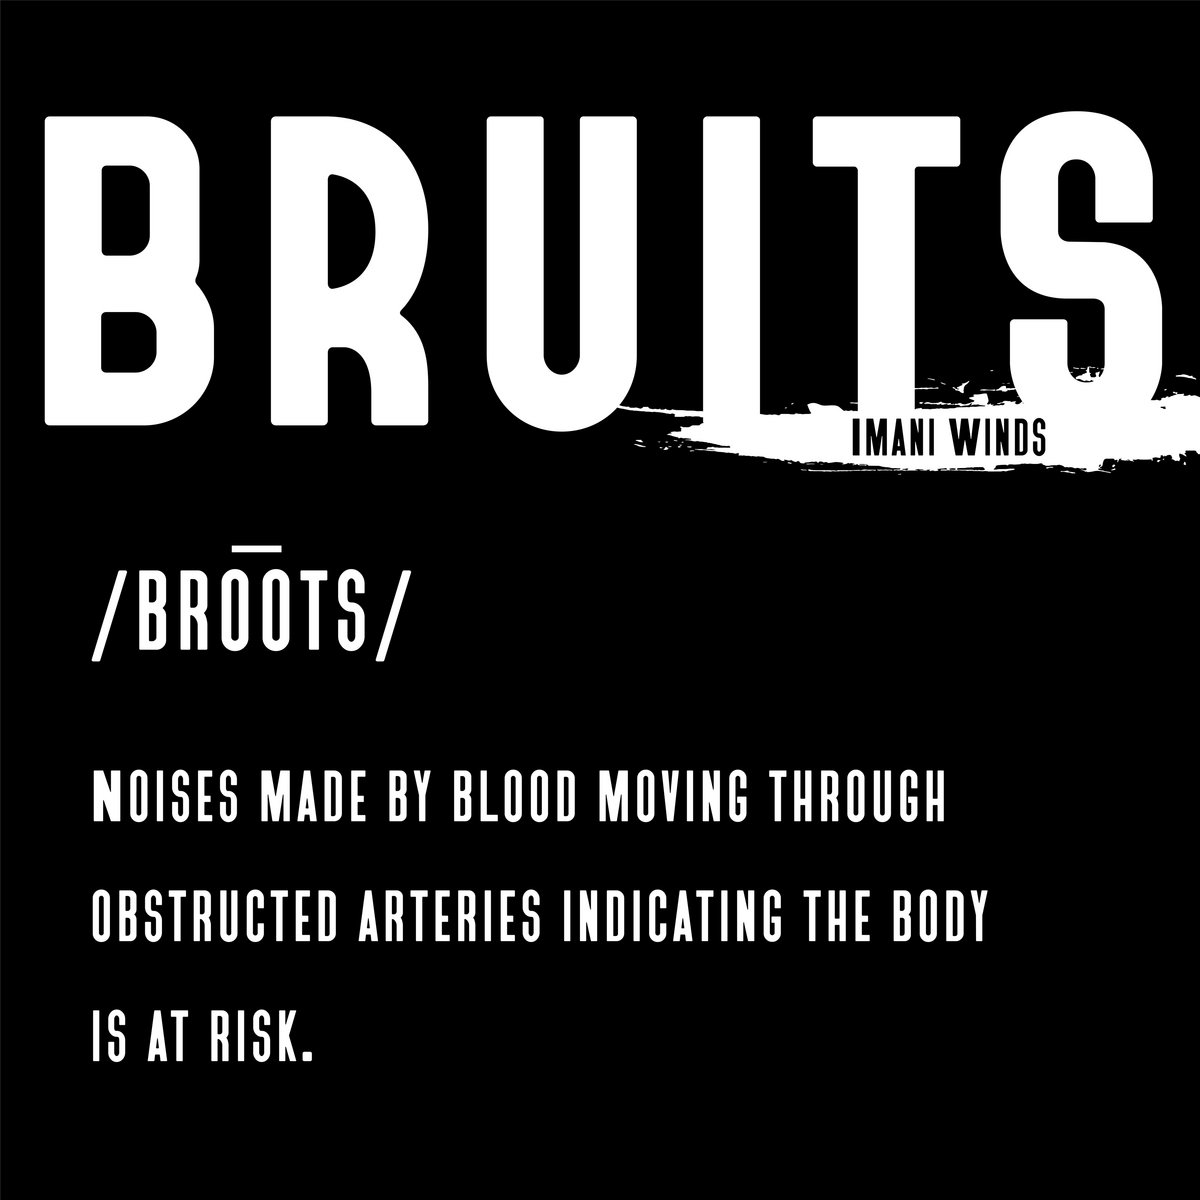 Review of Bruits (Imani Winds)